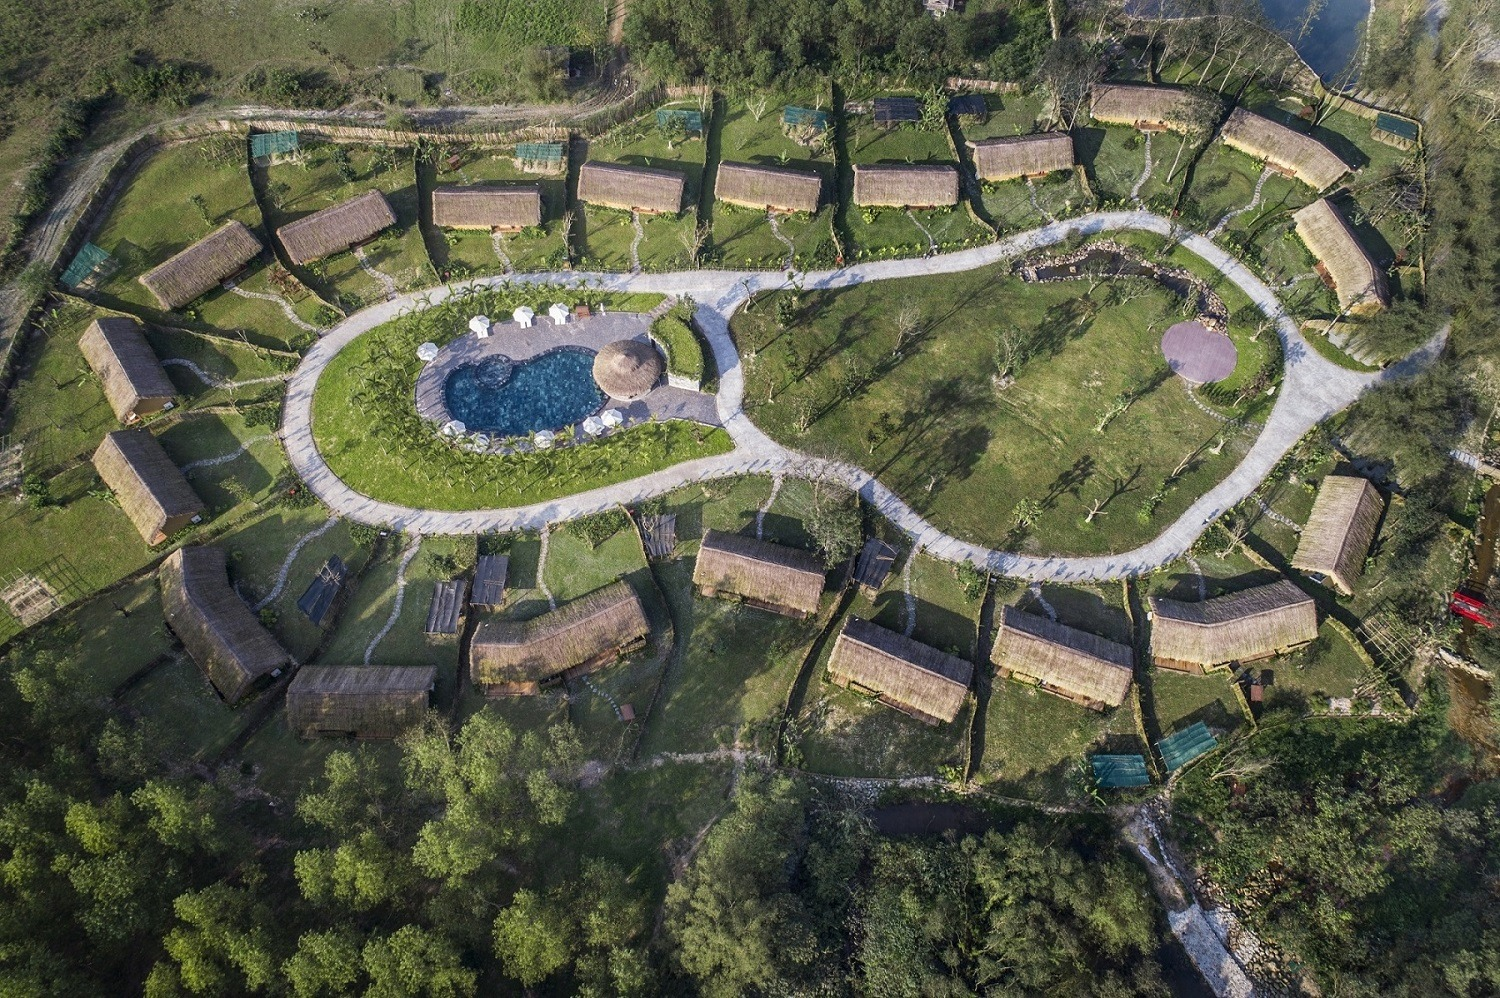 Aerial image of the Alba Wellness Resort and Thanh Tan Hot Springs Resort